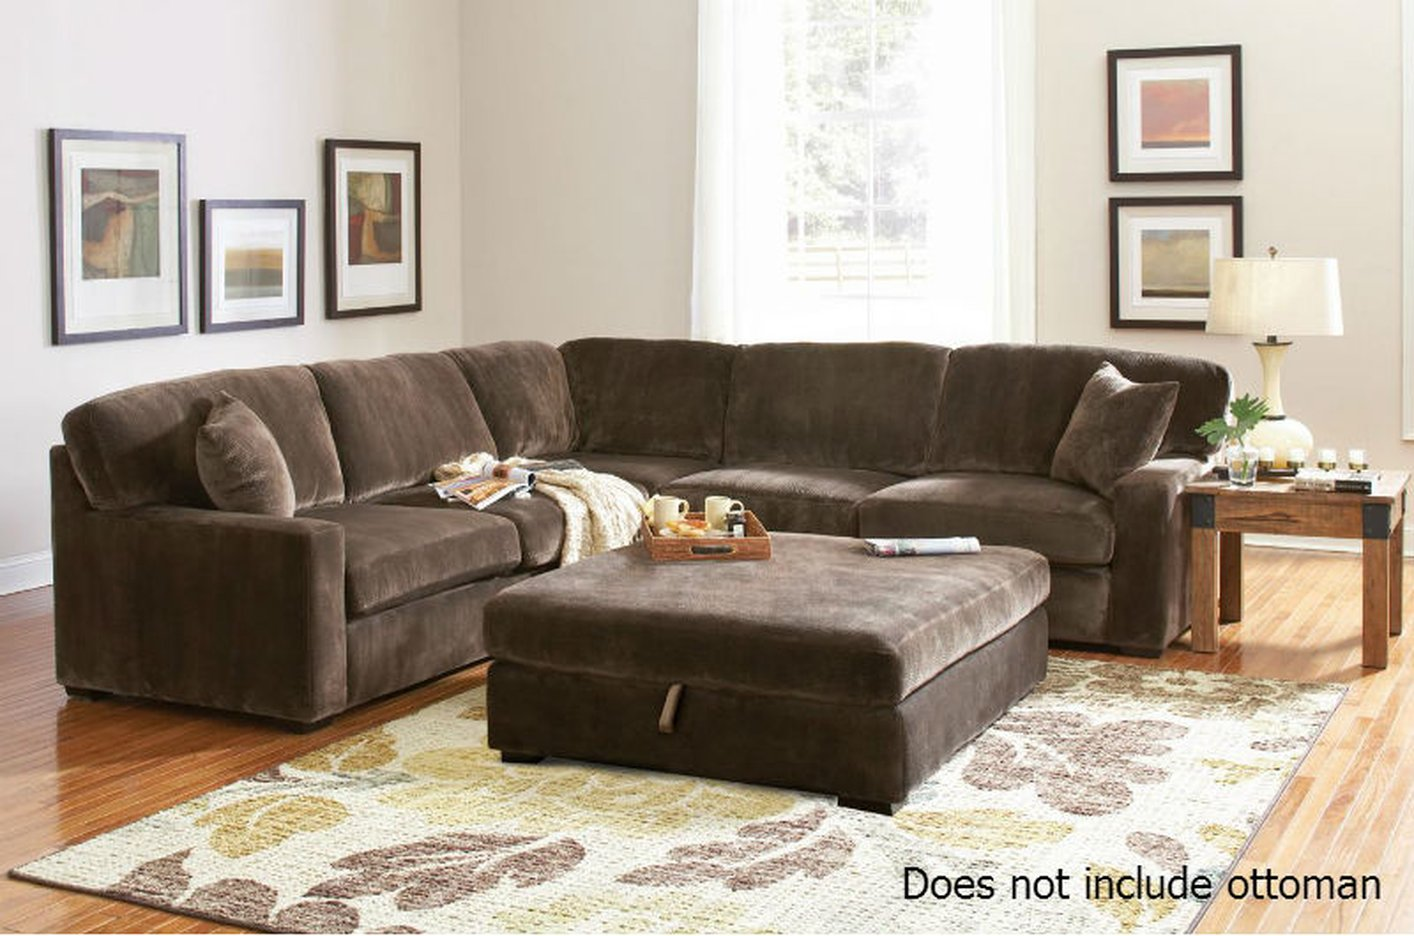 Coaster 500703 Brown Fabric Sectional Sofa Steal A Sofa